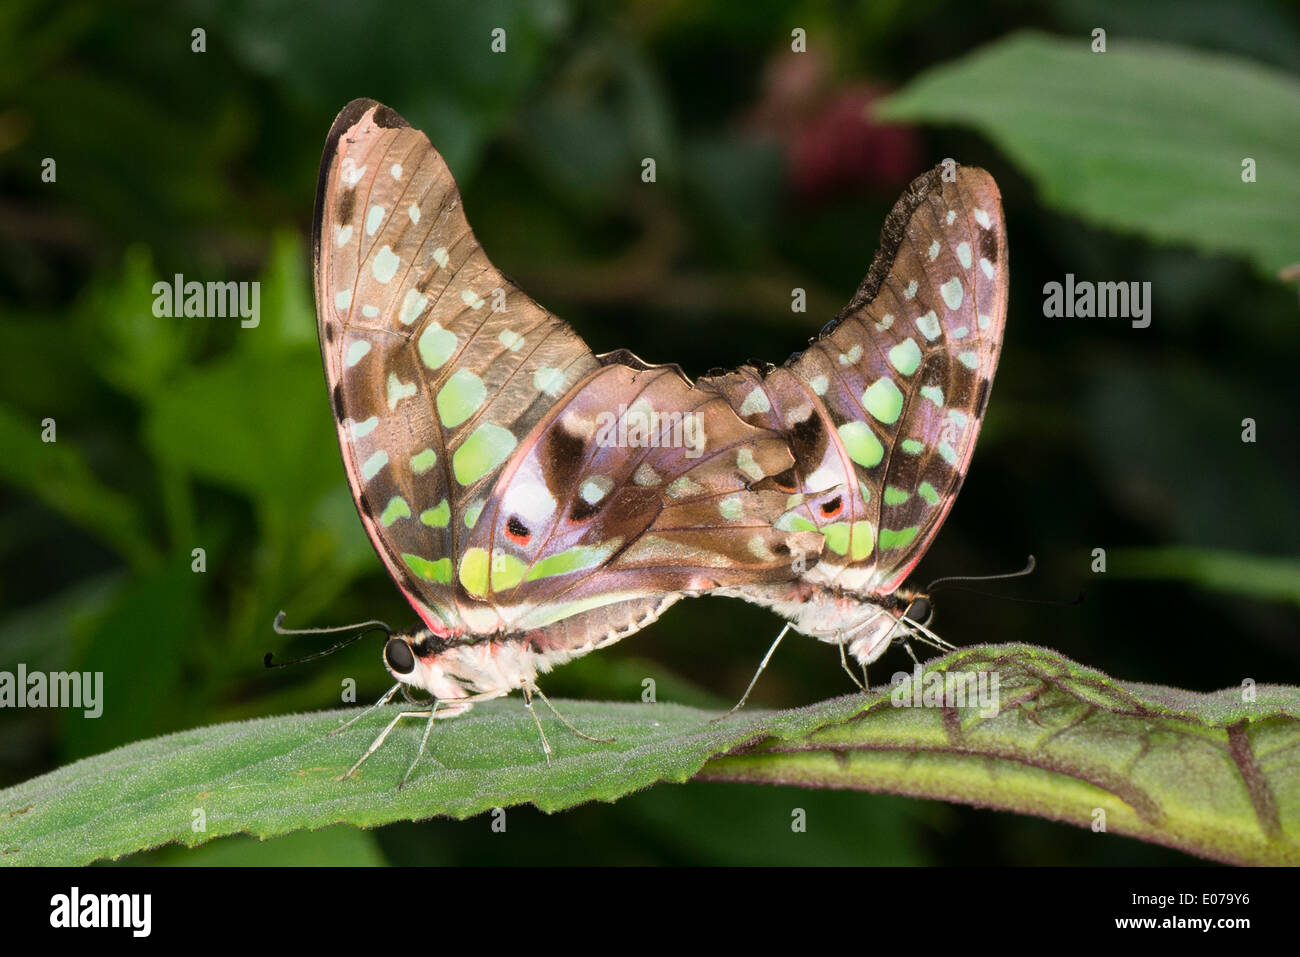 Green Triangle butterflies mating - Stock Image